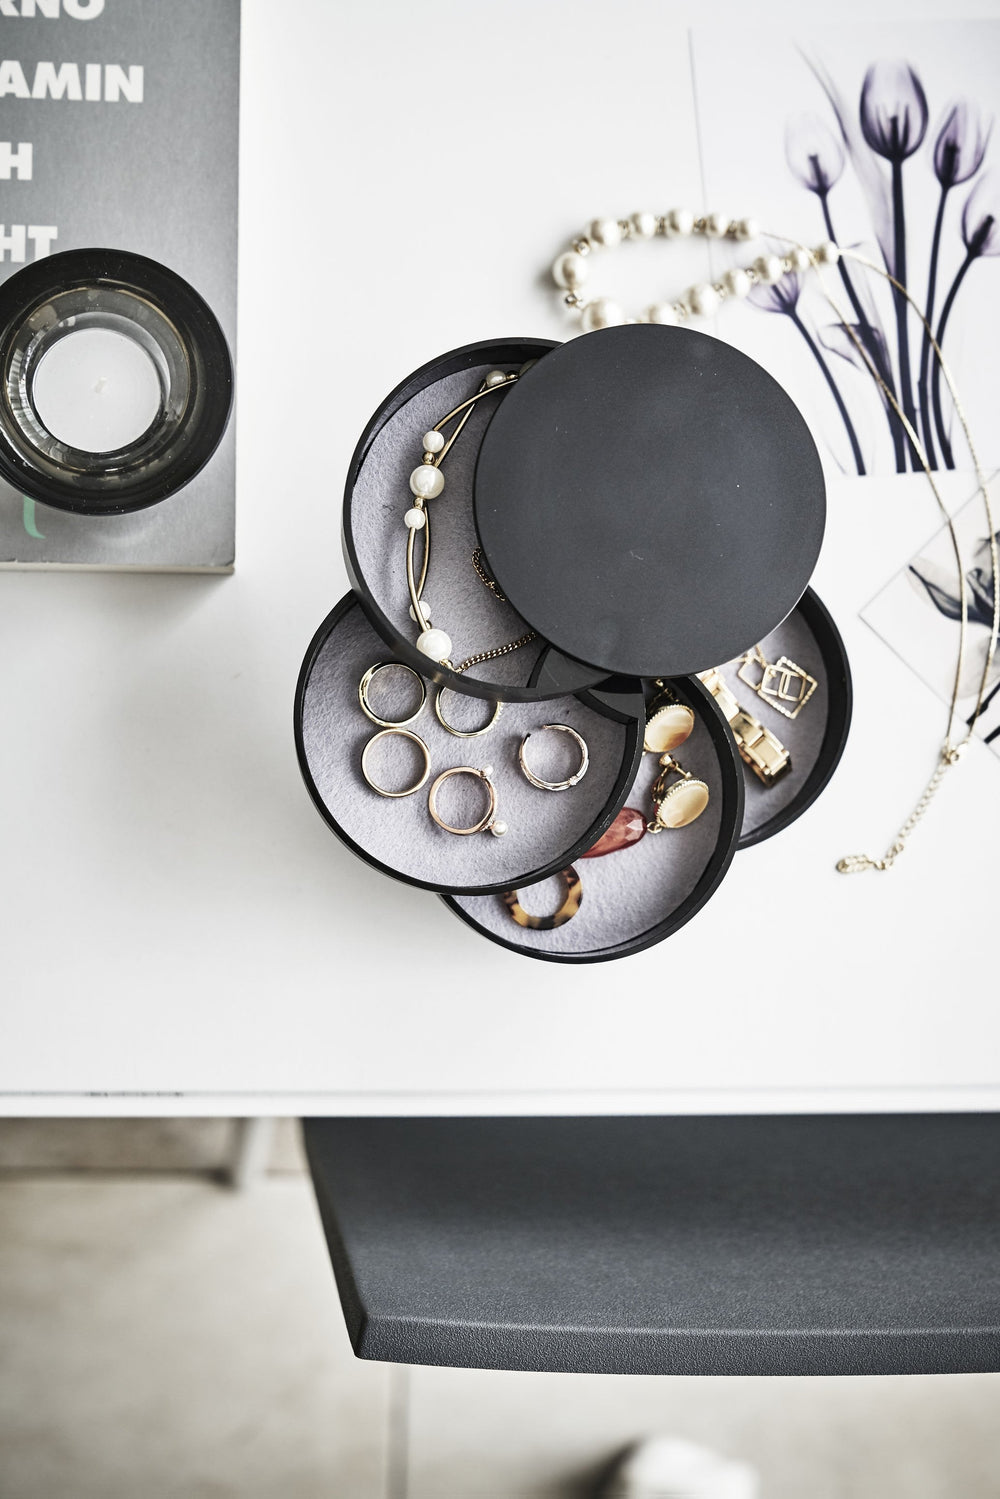 Top view of Yamazaki's 4-Tiered Accessory Tray on a vanity with various jewelry pieces and accessories inside the various stacked round compartments.